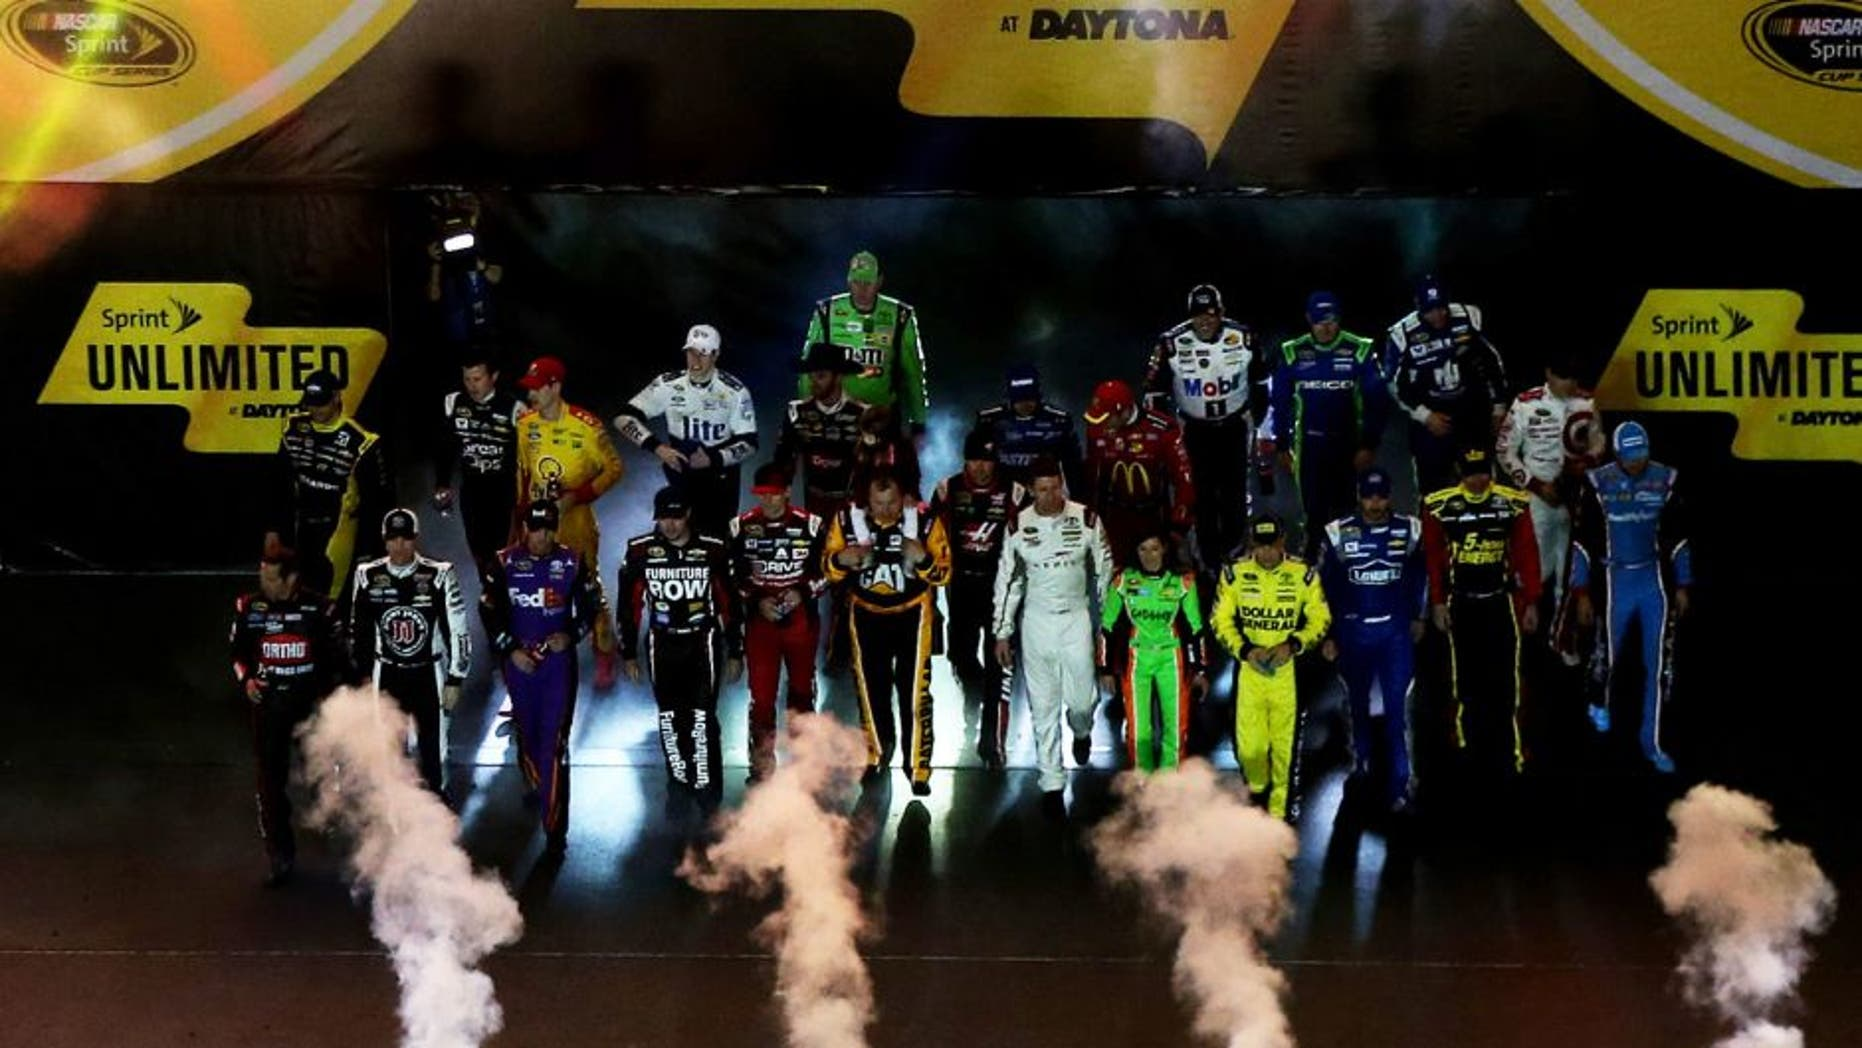 DAYTONA BEACH, FL - FEBRUARY 14: A view of driver introductions prior to the 3rd Annual Sprint Unlimited at Daytona at Daytona International Speedway on February 14, 2015 in Daytona Beach, Florida. (Photo by Sean Gardner/NASCAR via Getty Images)